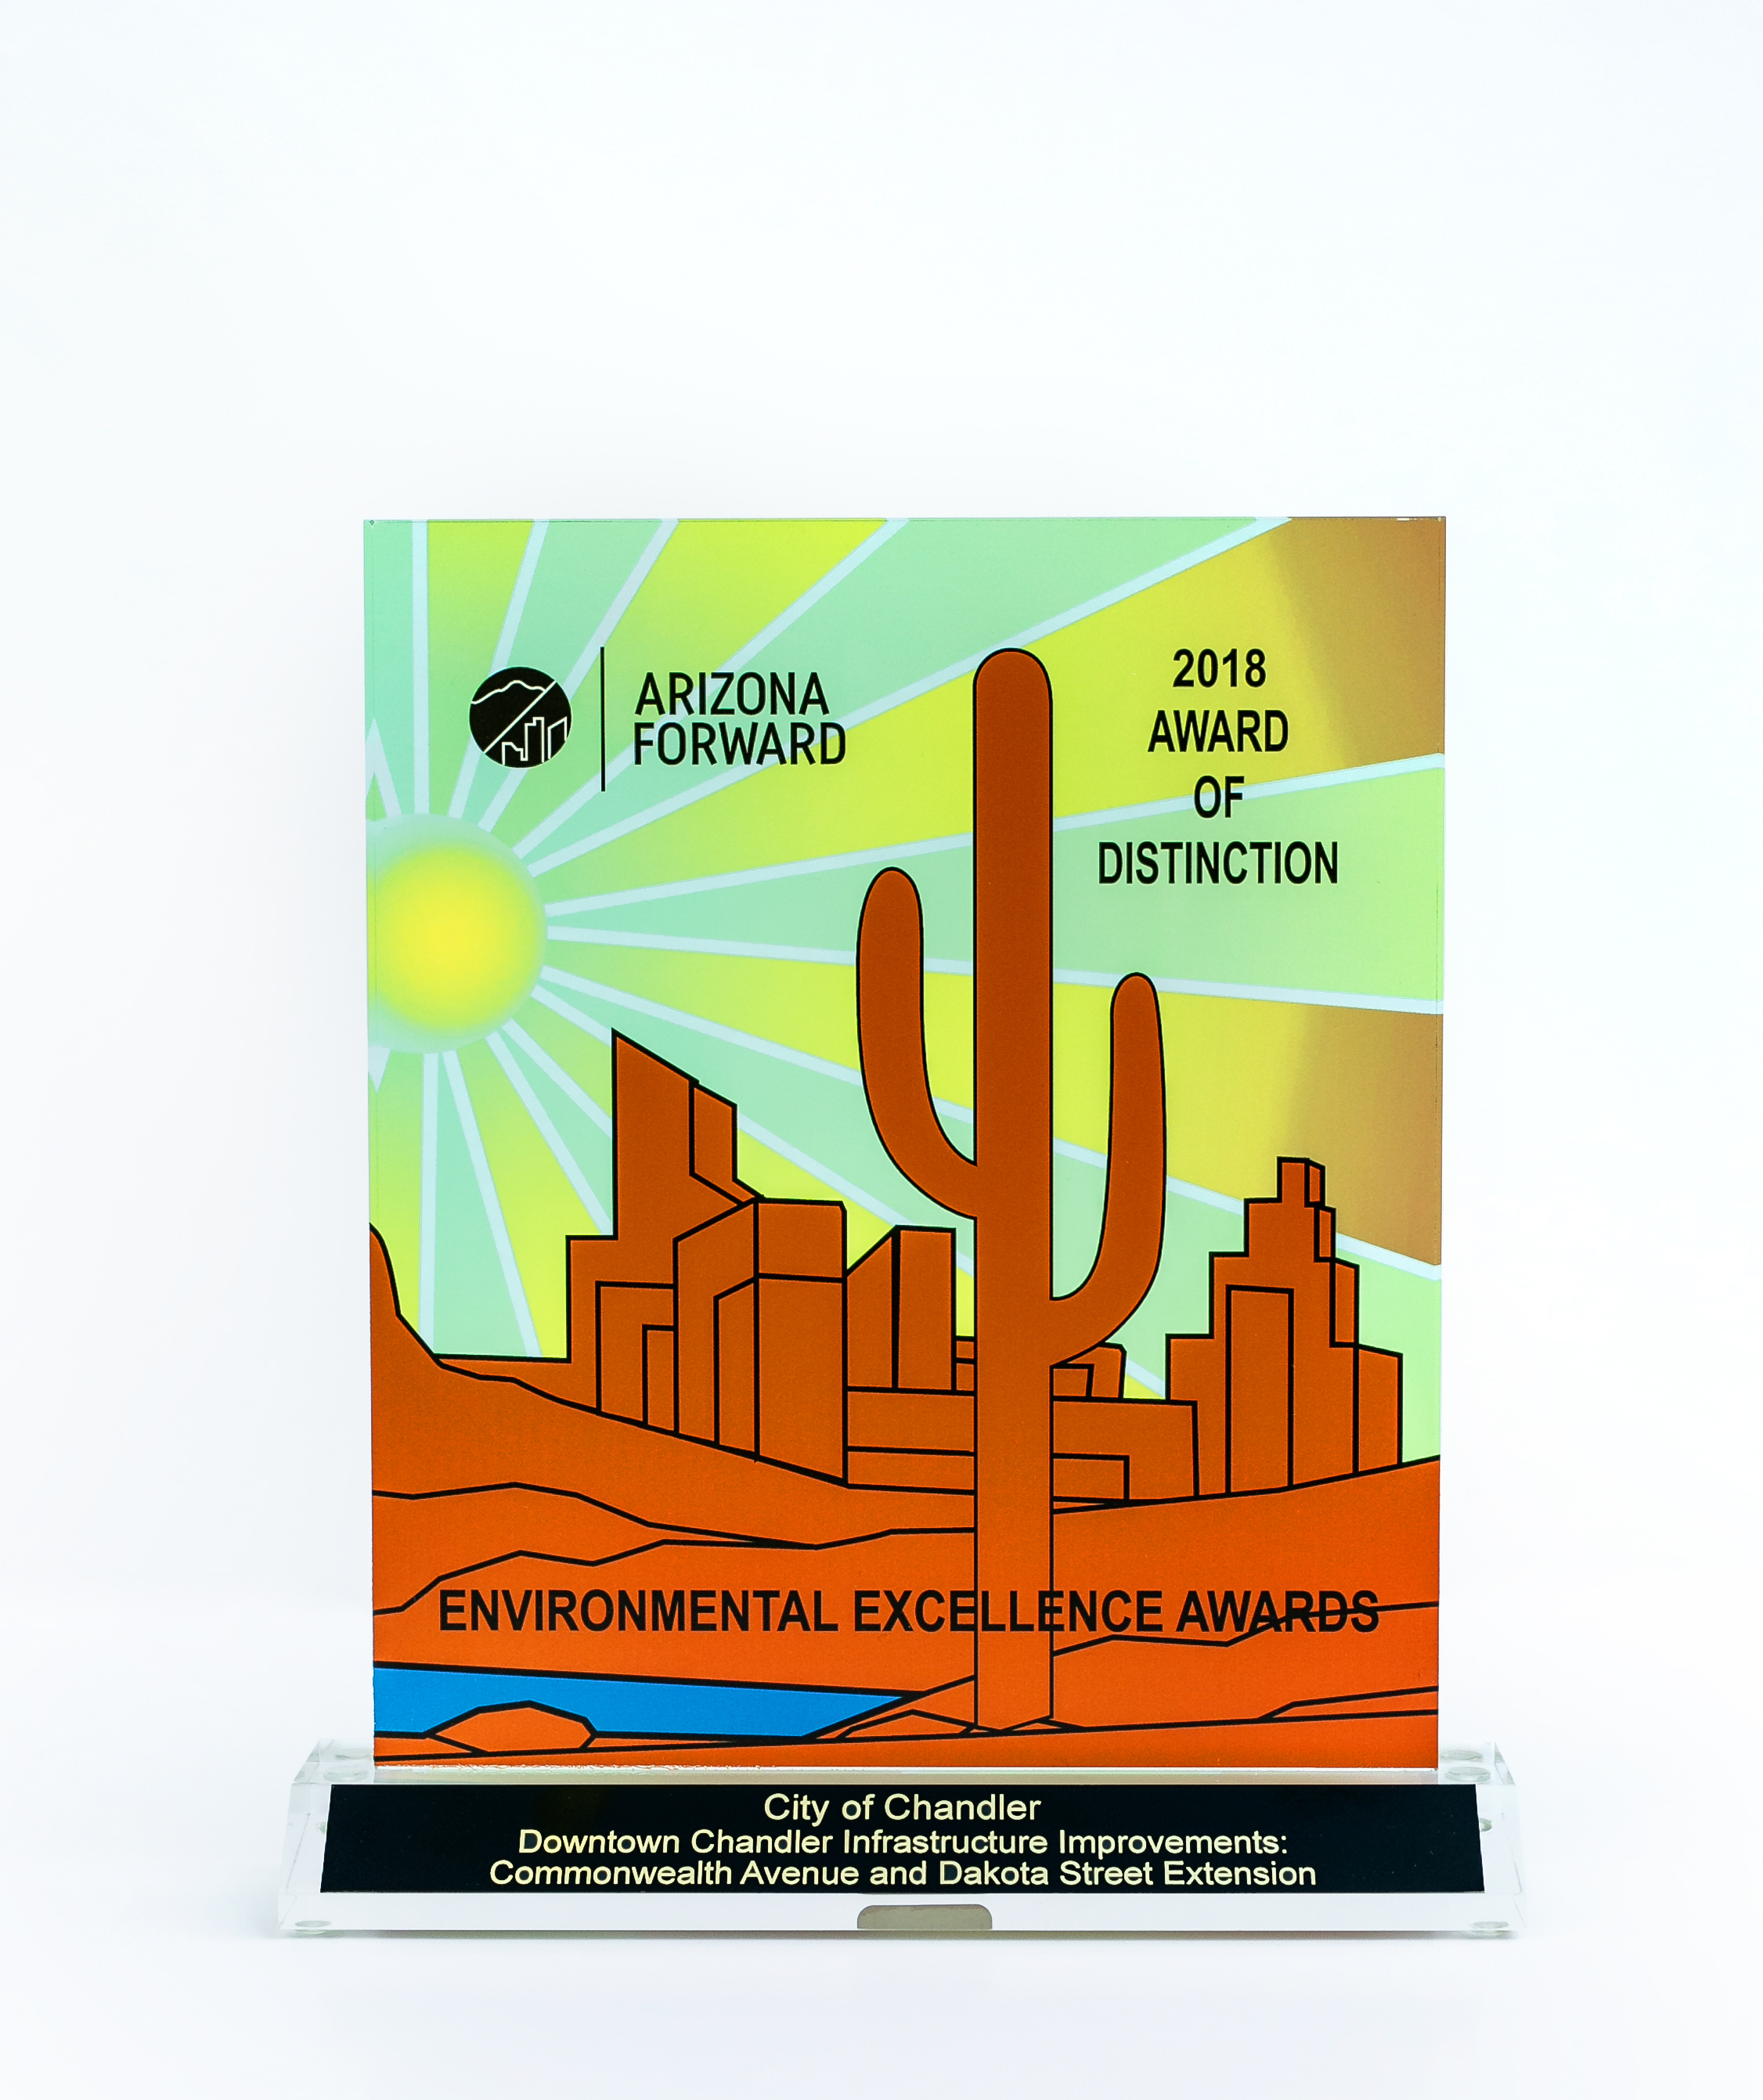 Arizona Forward Environmental Excellence Awards 2018 Award of Distinction - Downtown Chandler Imps.jpeg